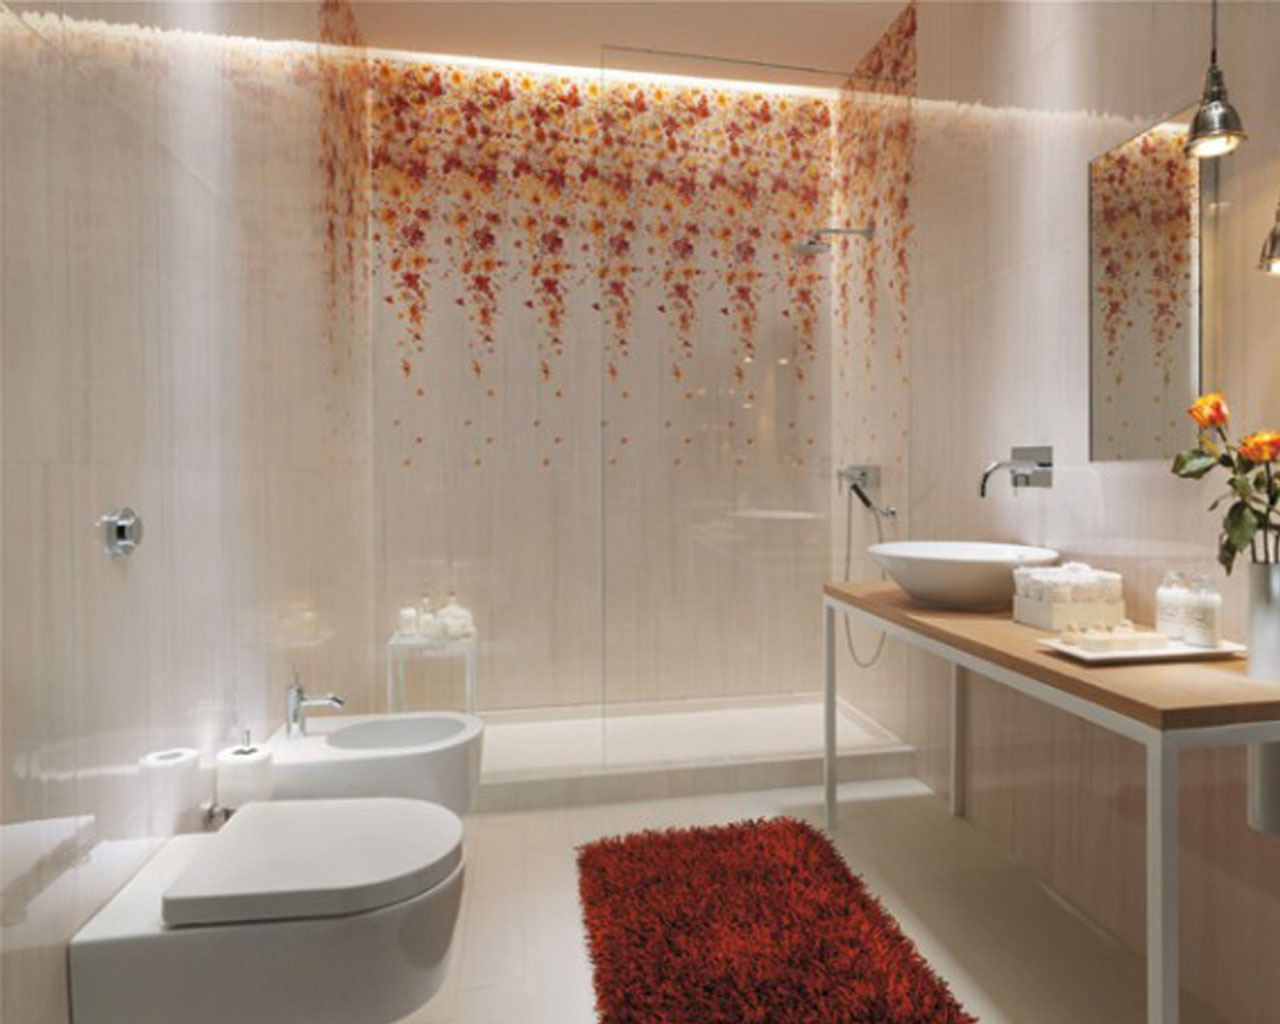 Bathroom ceramic tile design ideas